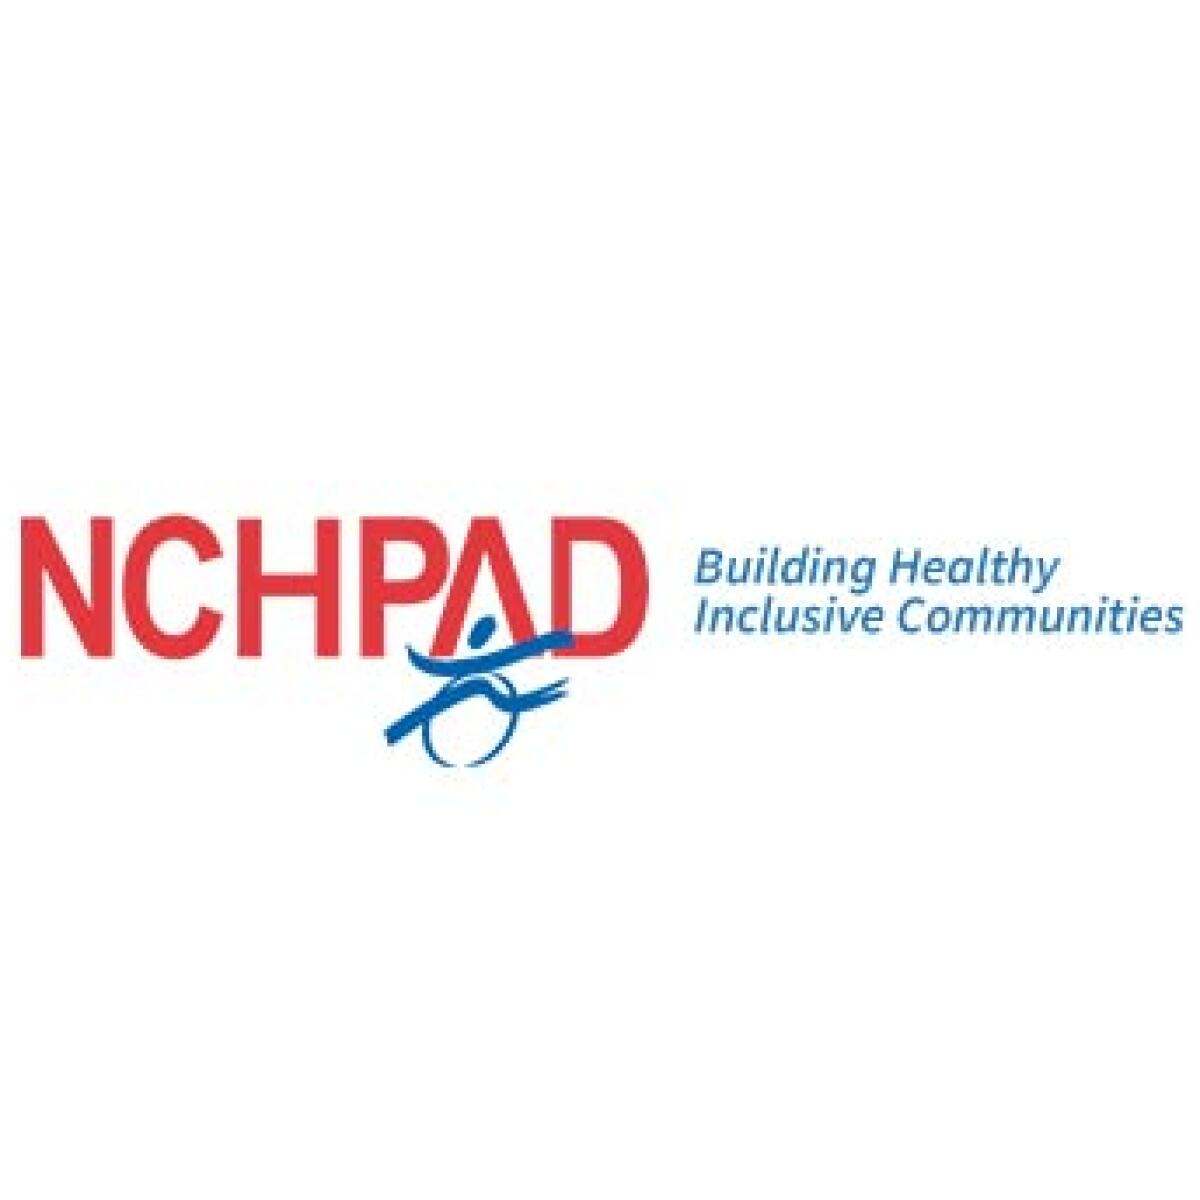 NCHPAD is a national public health resource and practice center empowering communities, organizations and individuals to create livable places, healthy people, and sustainable inclusion.